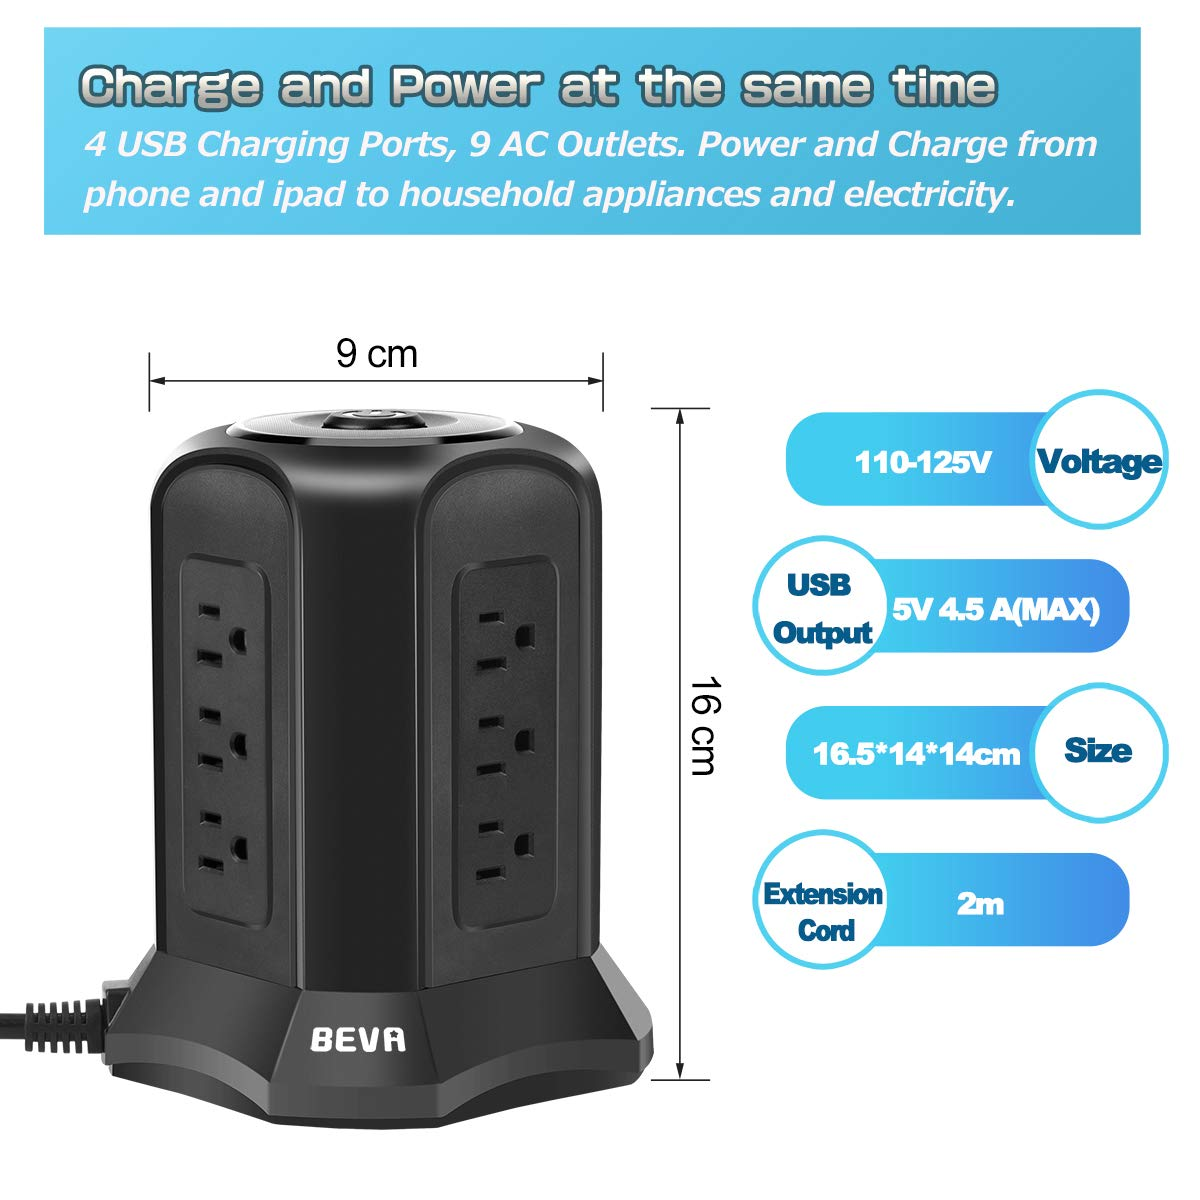 BEVA Power Strip Tower with 9 AC-Outlets and 4 USB Charging Ports Switch Control,Surge Protector Desktop Power Strip Charging Station 6 ft Extension Cable for Office and Home Black by heying (Image #2)